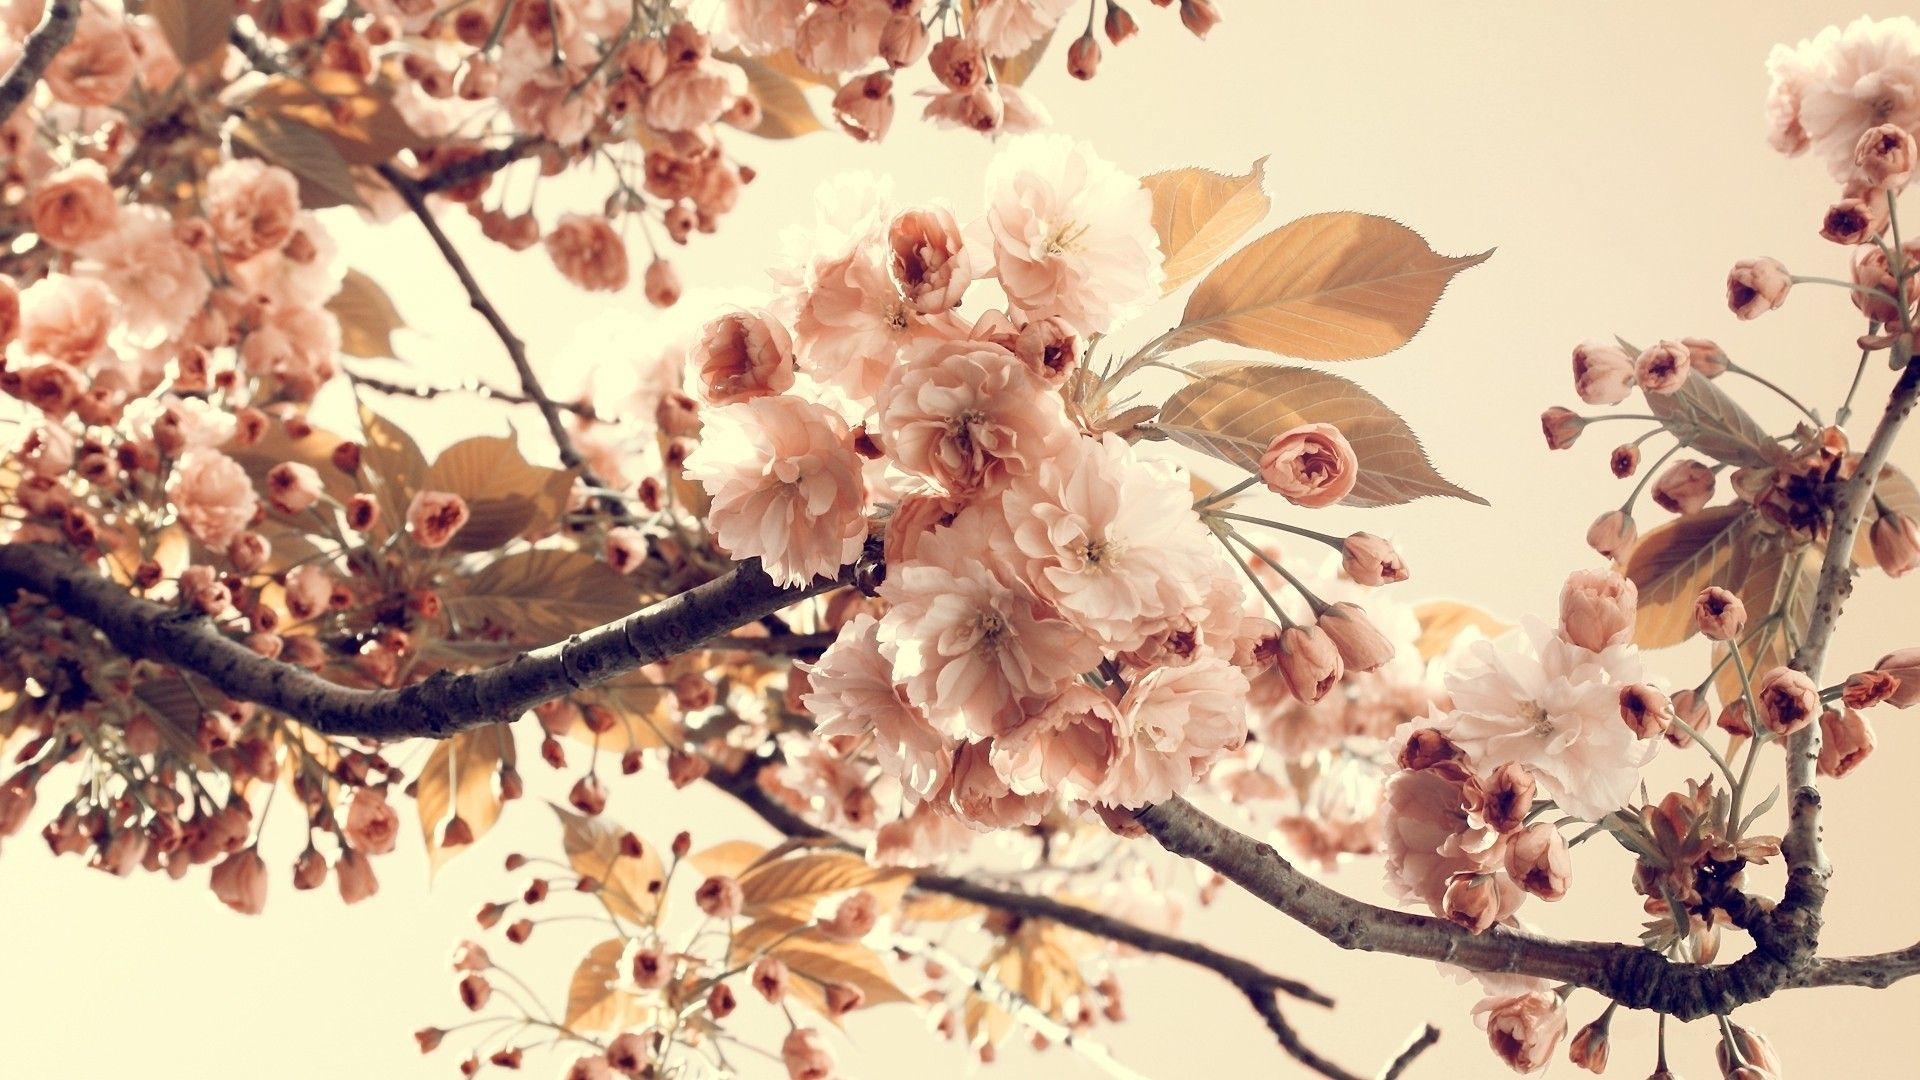 Vintage Flowers Photography Wallpapers Top Free Vintage Flowers Photography Backgrounds Wallpaperaccess